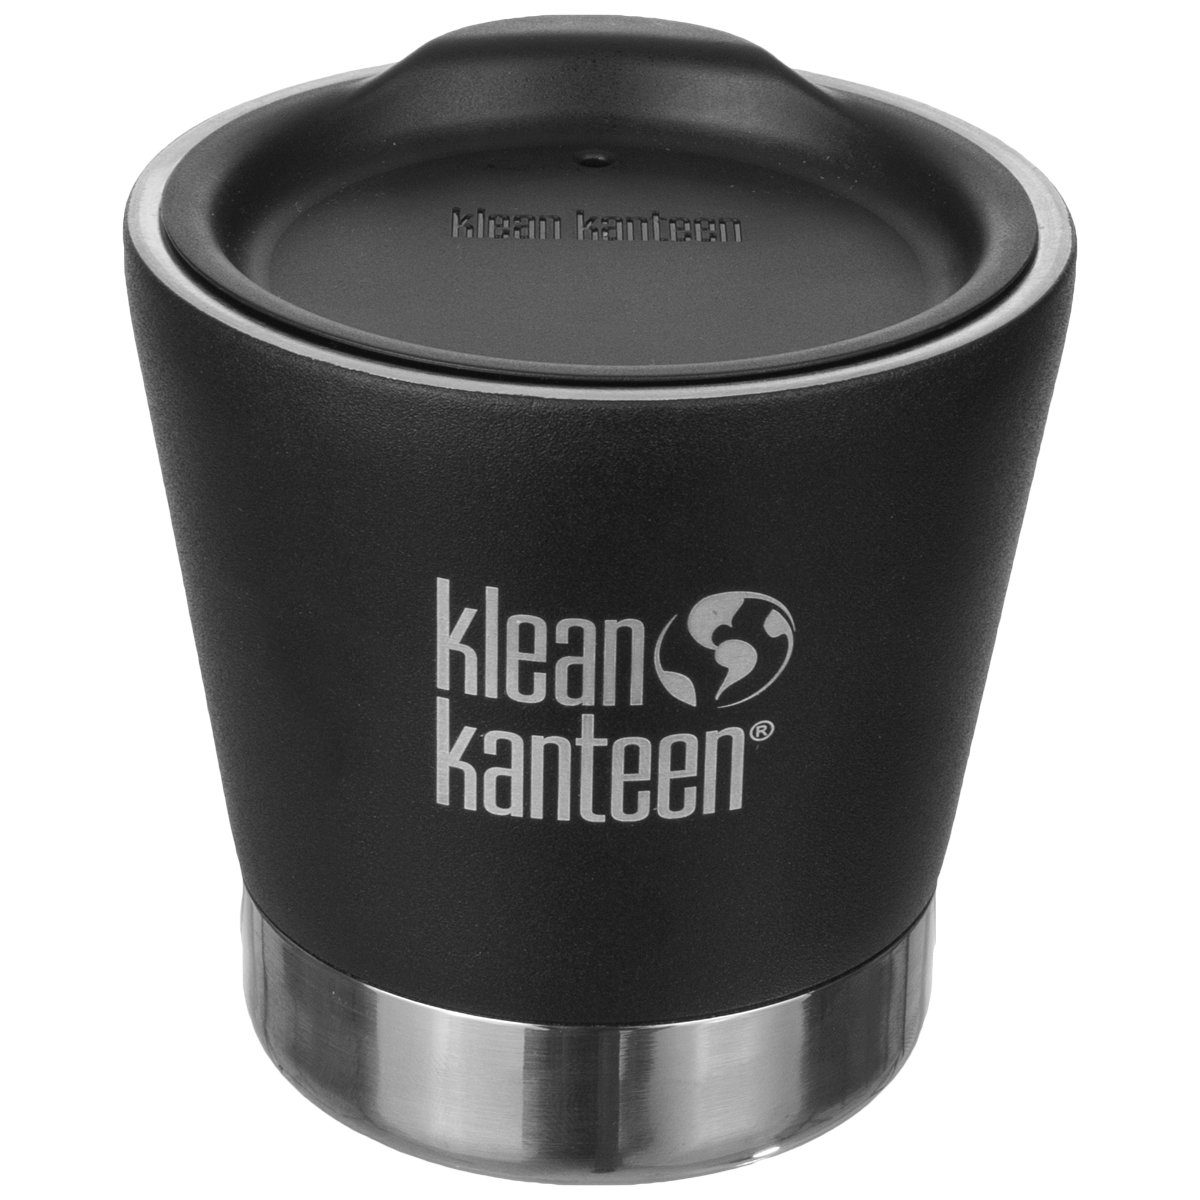 Klean Kanteen Vacuum Insulated Tumbler 8oz 237ml Cup Mug